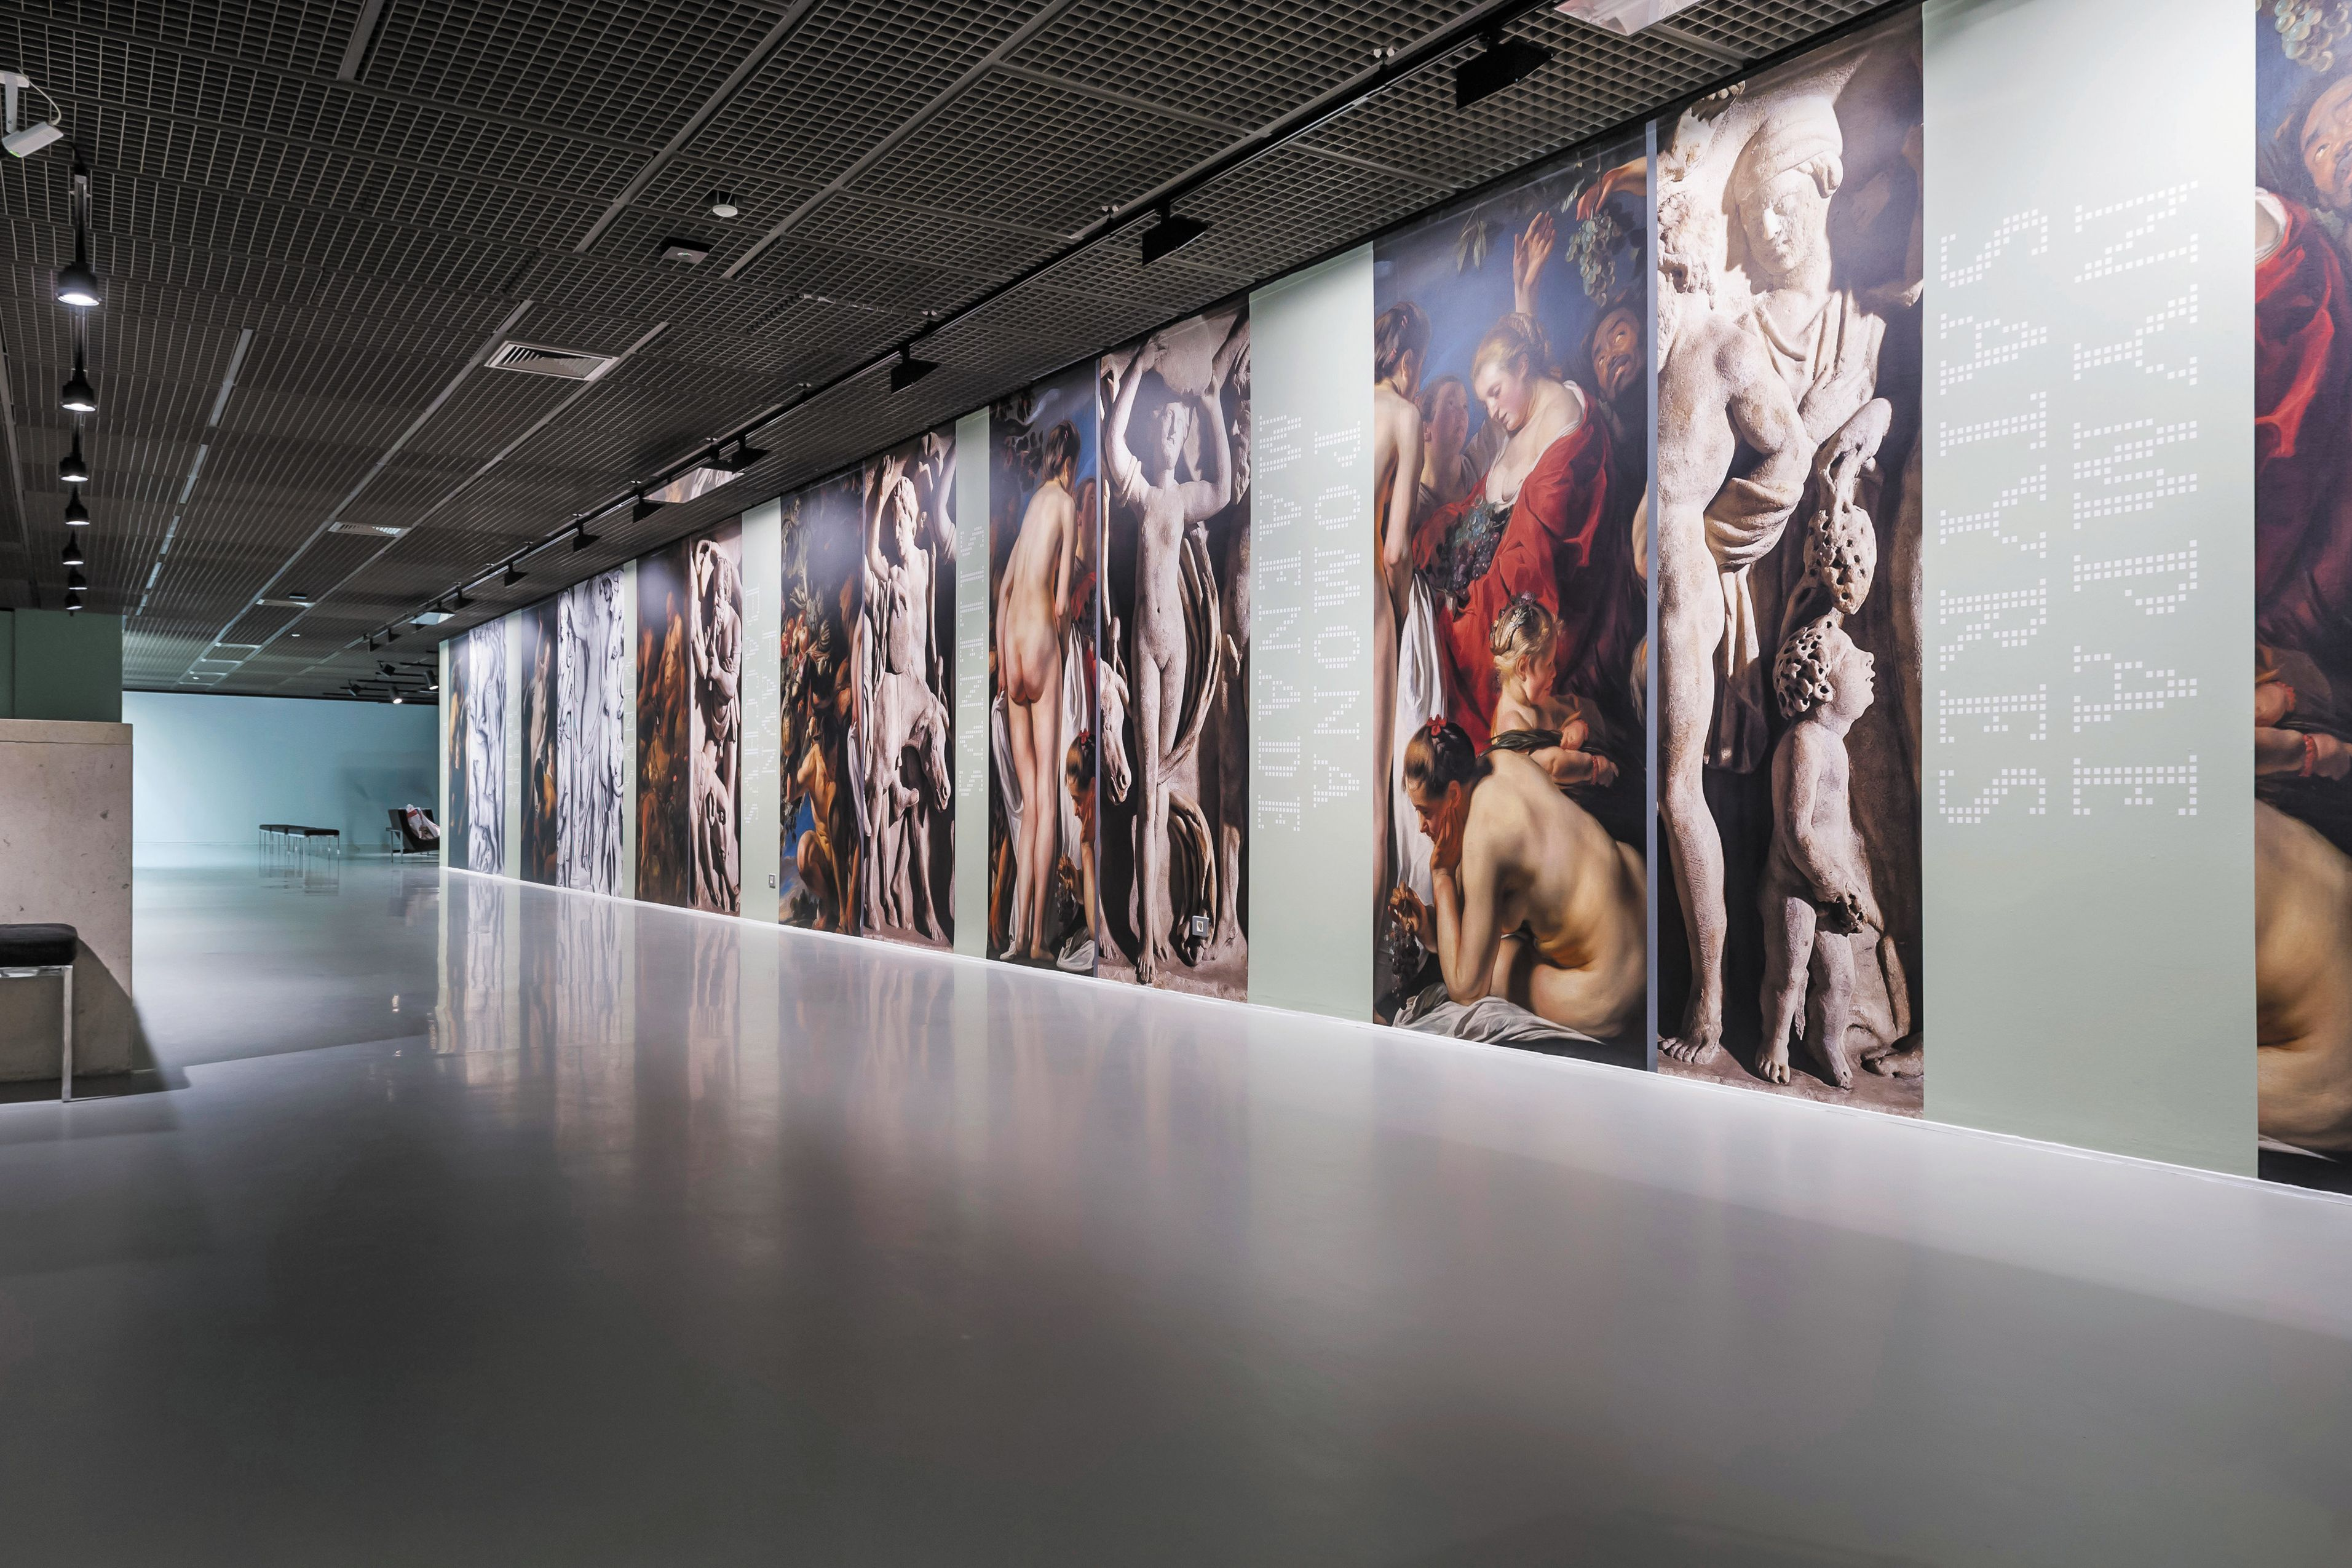 Floor of the Royal Museums of Fine Arts in Brussels, Belgium